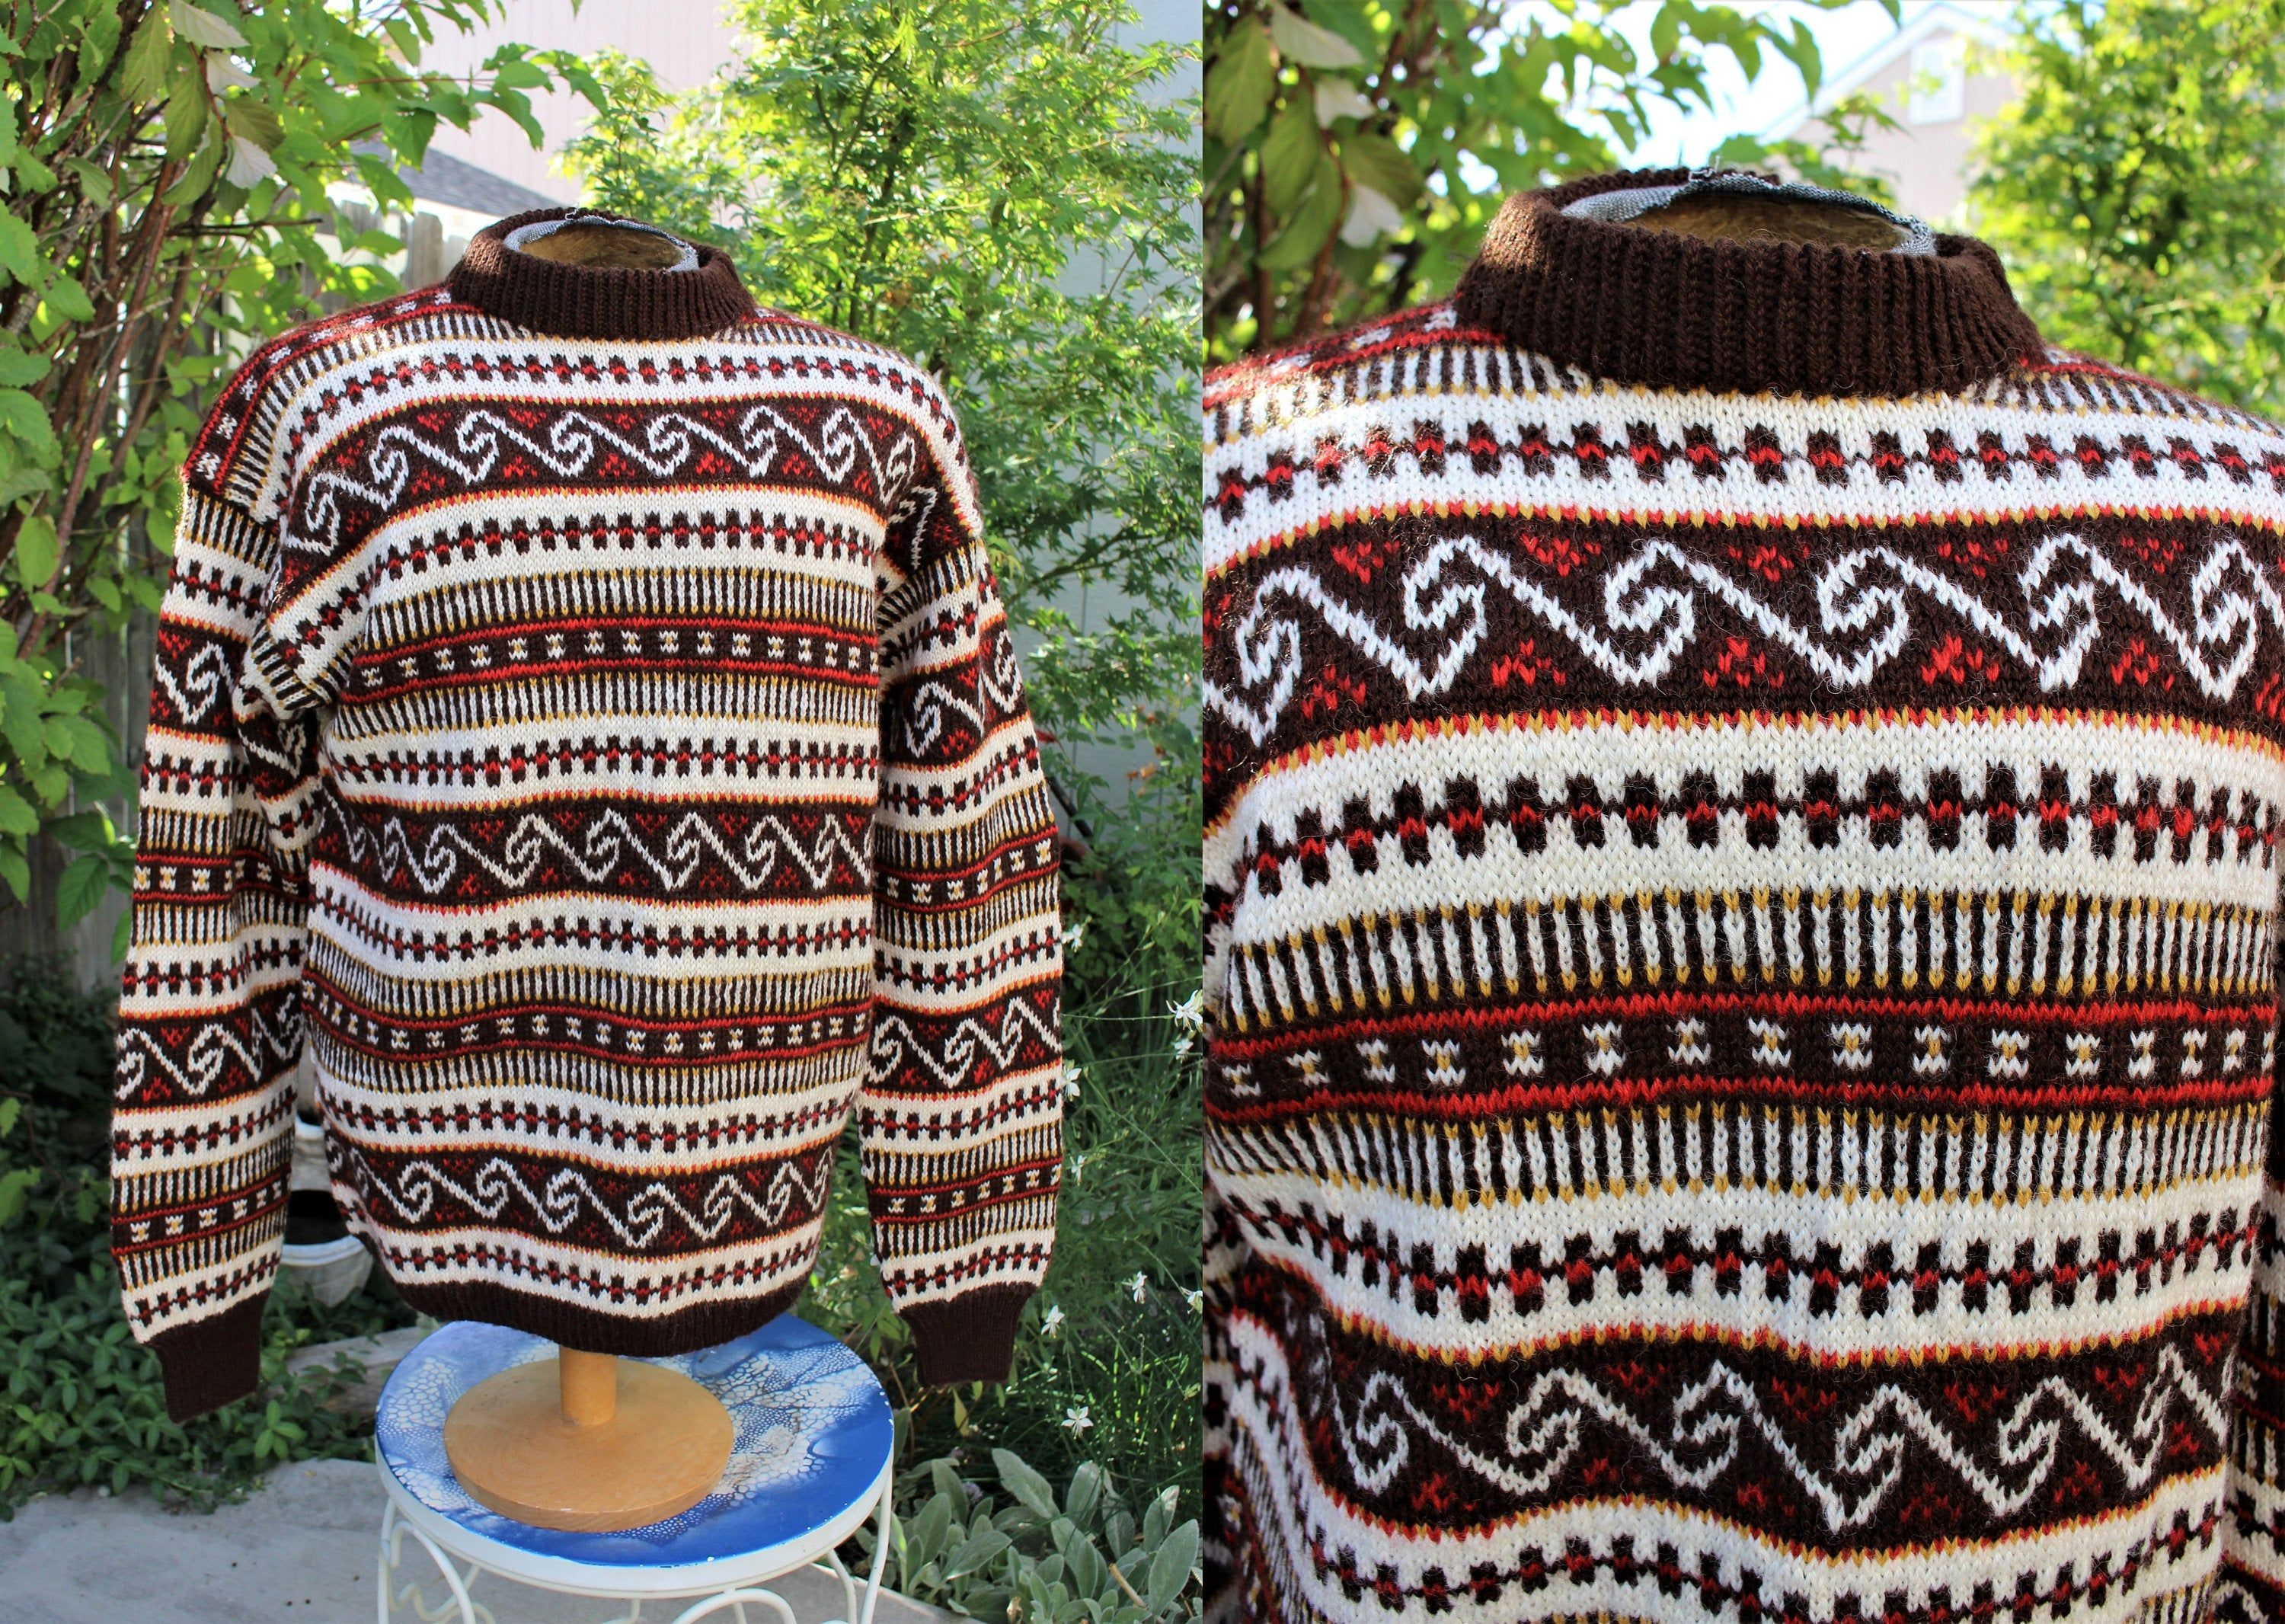 1980/'s Men/'s Norway Design Wool Pullover Sweater Stripes Hand Knitted Nordic Earth Tones Large Heavy Winter Ski Vintage Retro 1980/'s